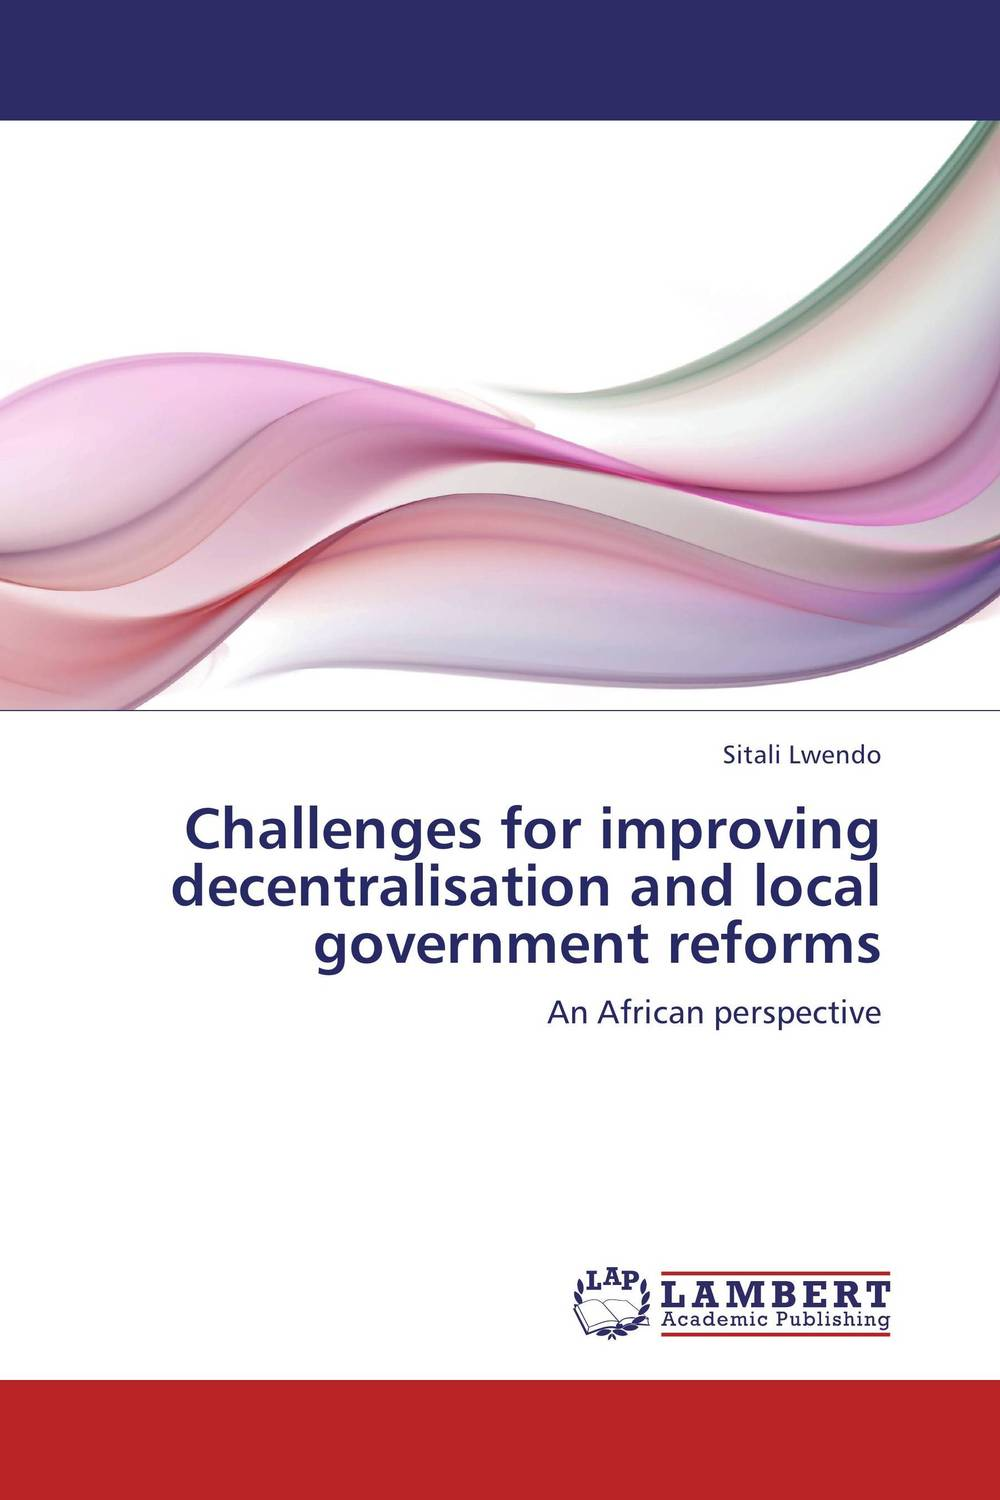 Challenges for improving decentralisation and local government reforms the challenges of decentralization in promoting citizen participation